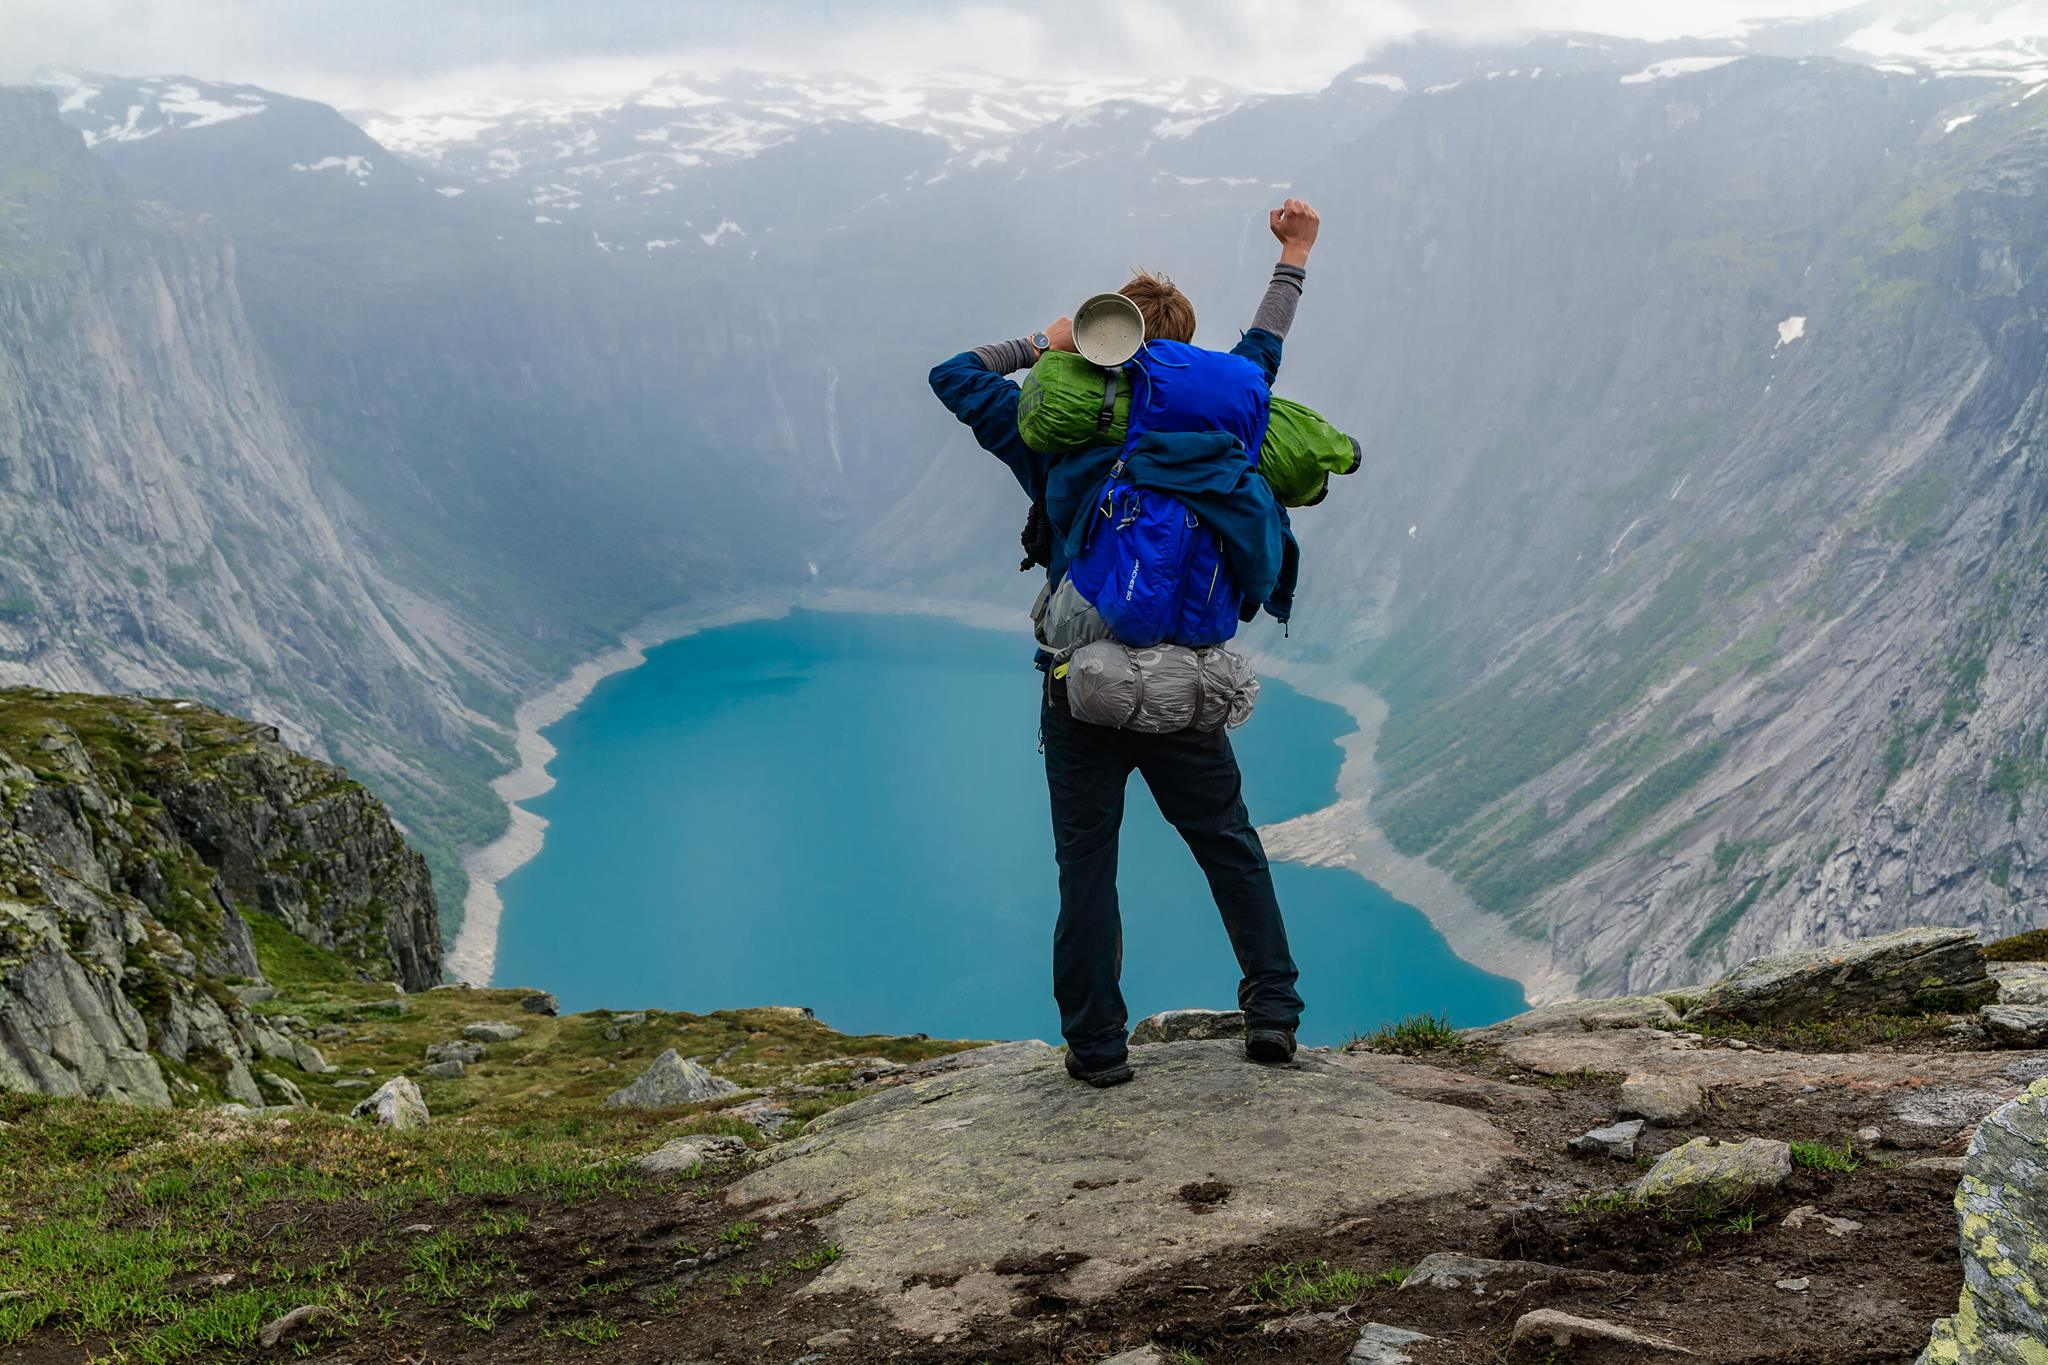 Pure joy. I was fighting for my dream to visit Trolltunga. And I did it!